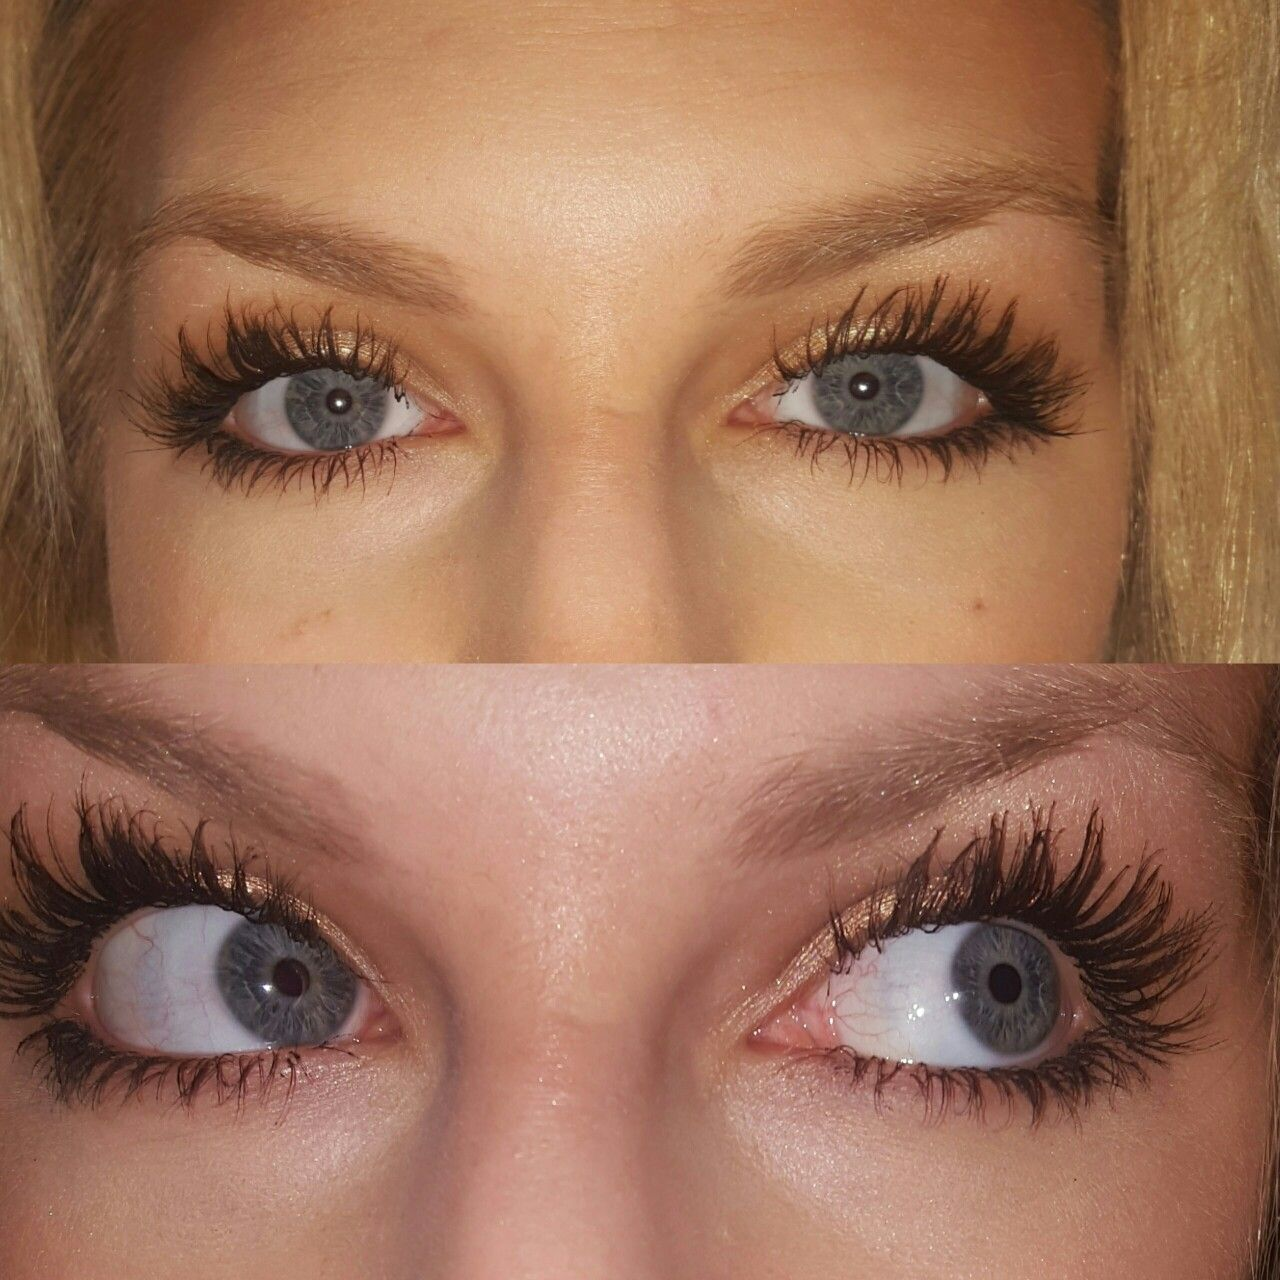 Babe Lash Serum Grow Your Own Lashes Longer And Fuller Without The